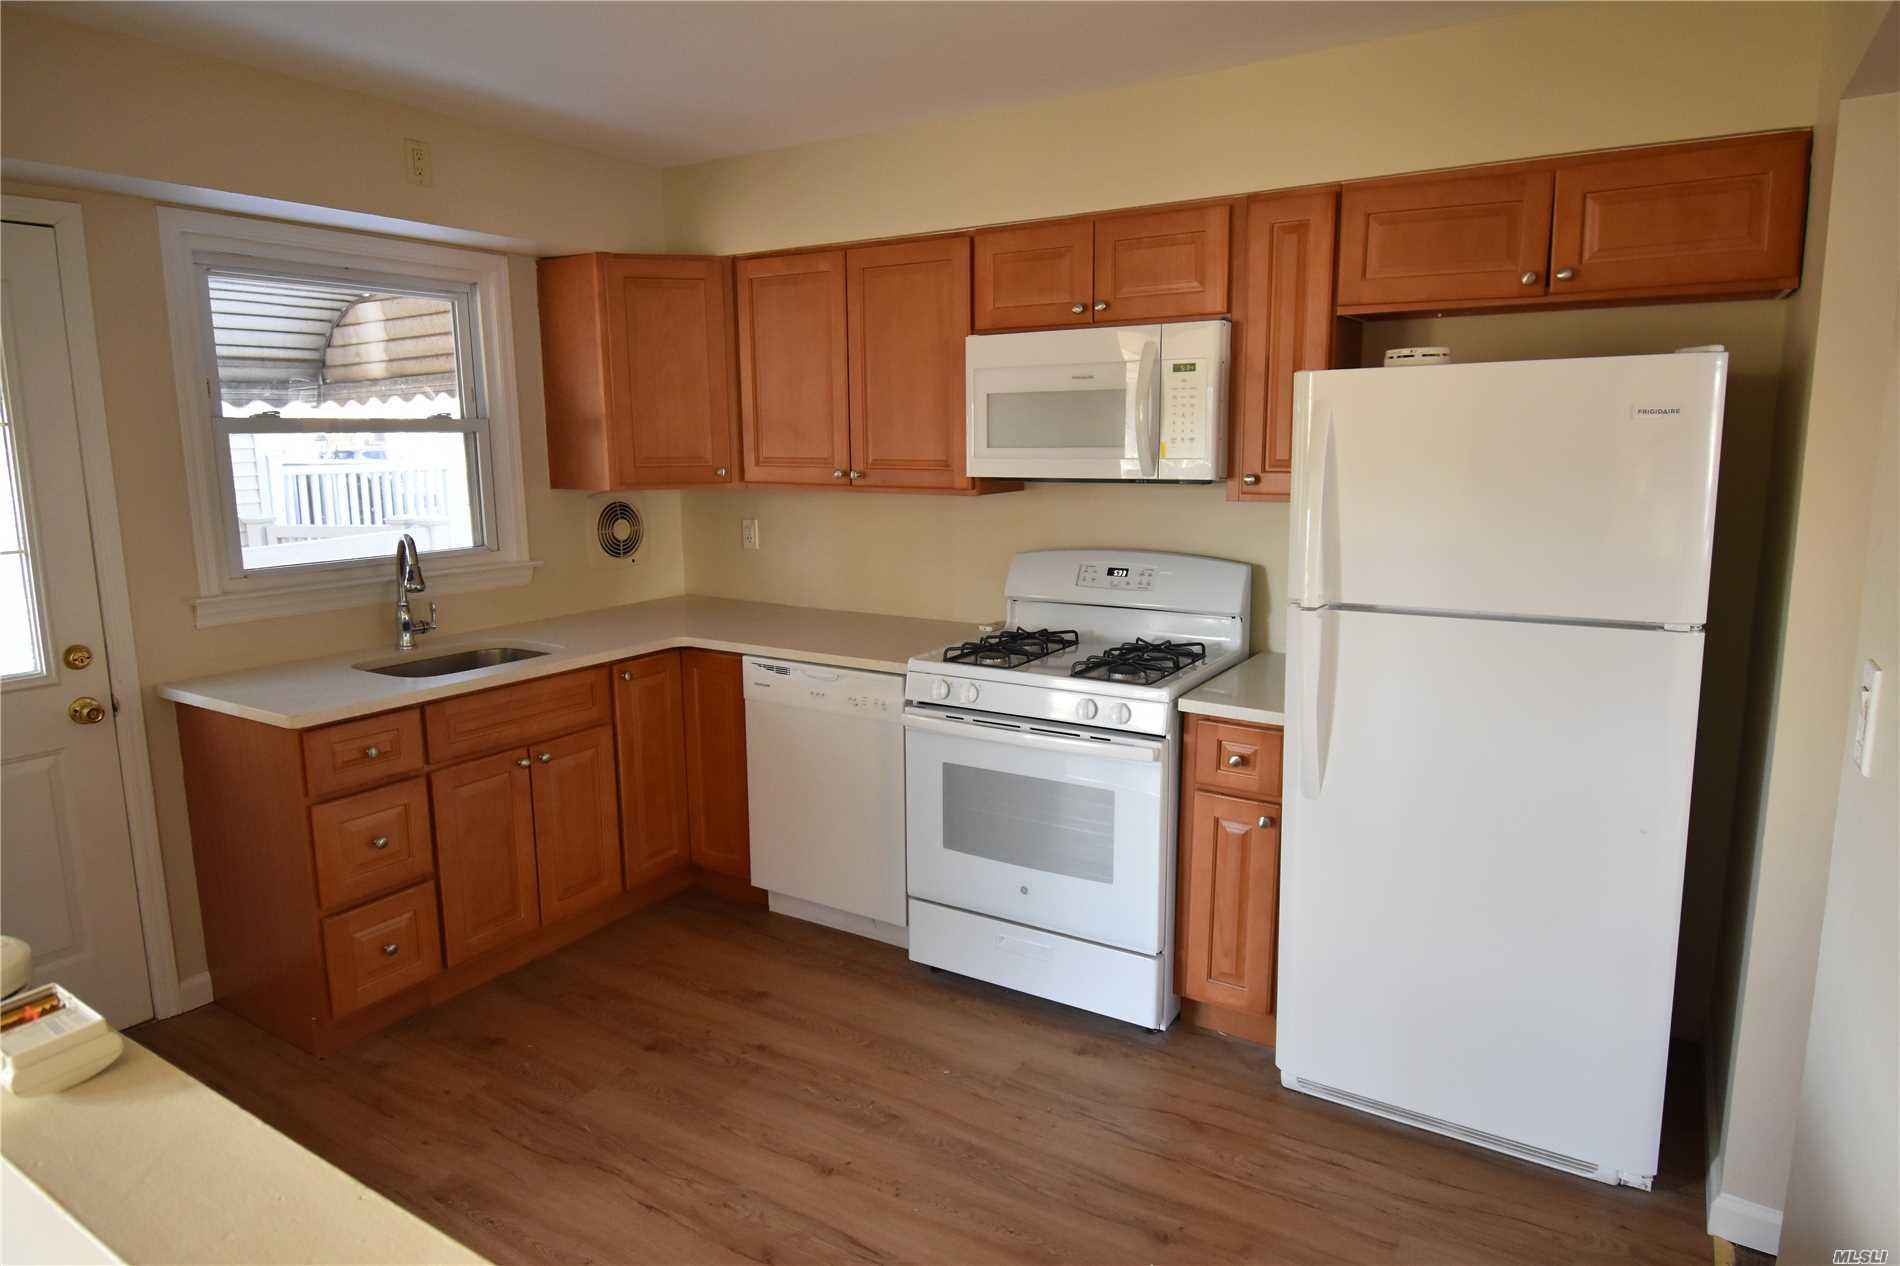 Main part of legal two family home. Tremendous Space, New Kitchen With Quartz Countertops, Newly Refinished Floors, Full Access To Yard, Basement, And Walking Distance To Village Stores. Lirr Farmingdale Train Station Is An 11 Minute Walk. No Dogs Over 10Lbs, Full Basement With Laundry Room, Full Bath And Outside Entrance. This House Is A Great Opportunity To Be In The Village And In A Renovated Home. See It Today!